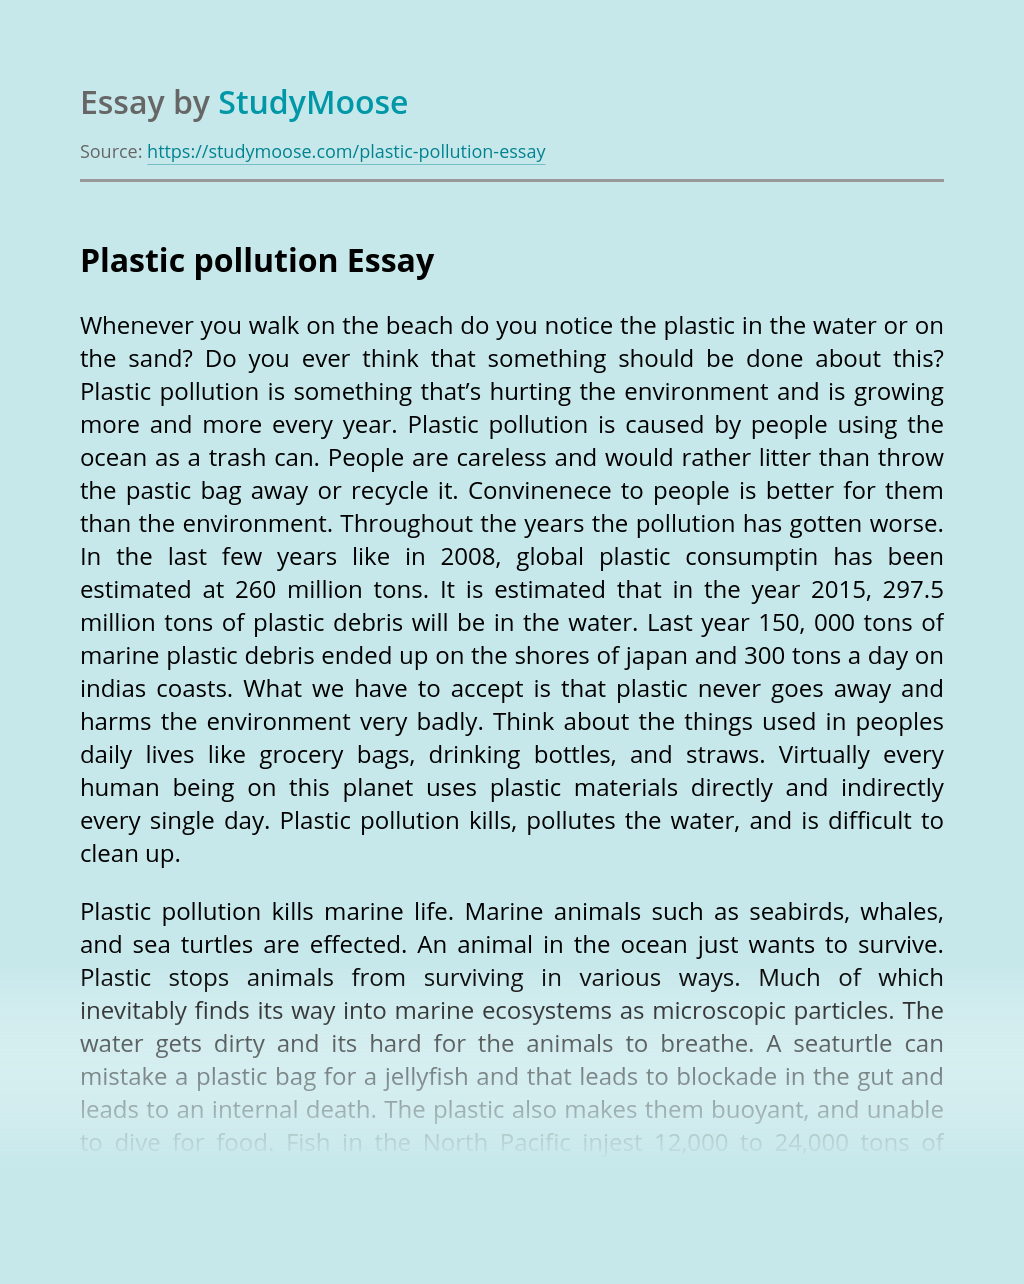 Free essay on plastic pollution how to write an analyzation of a poem